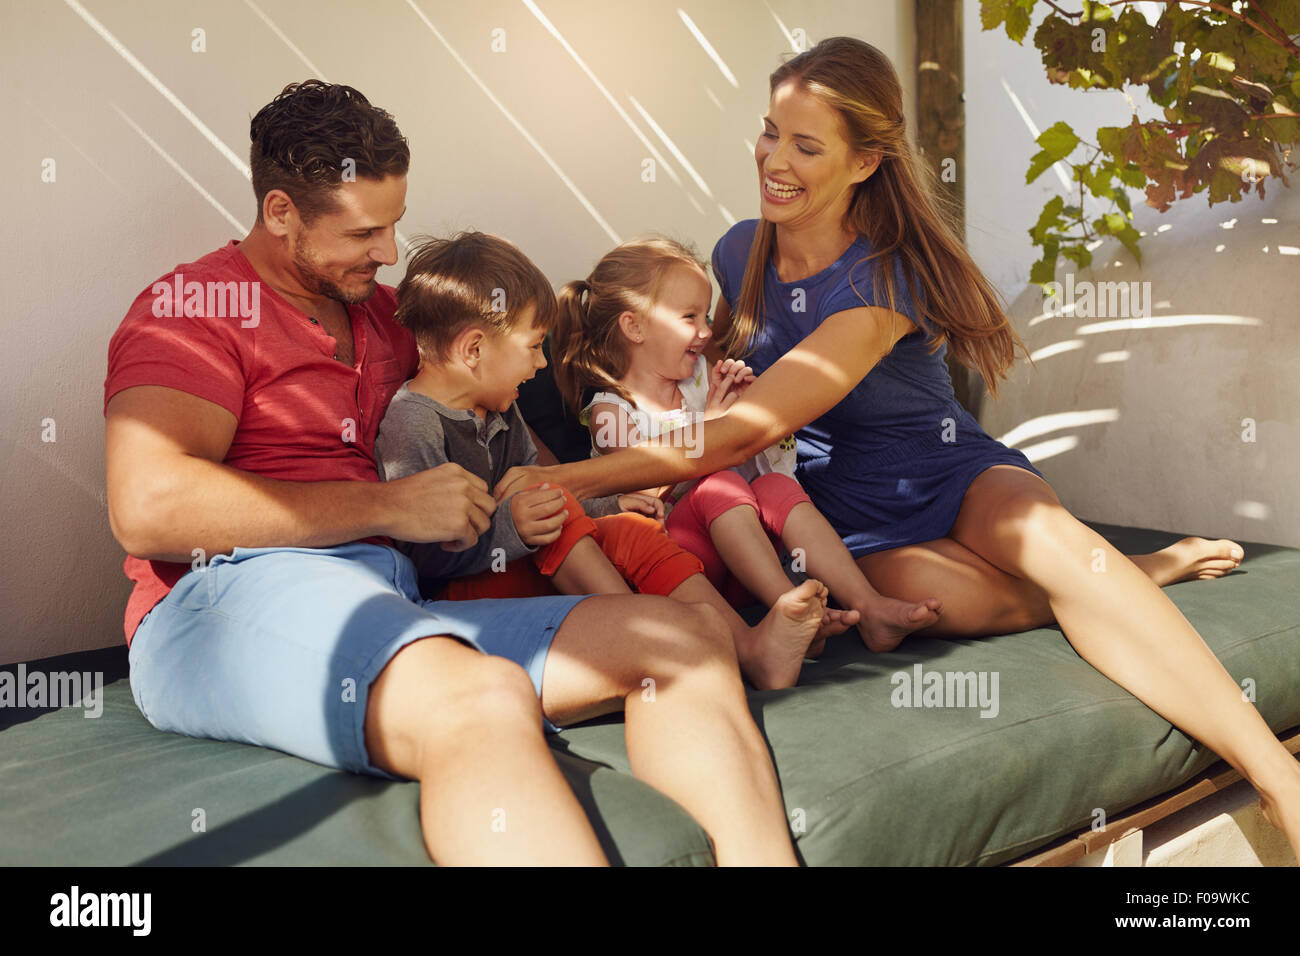 Shot of happy young family sitting together in patio. Couple with their children sitting on couch in backyard having - Stock Image